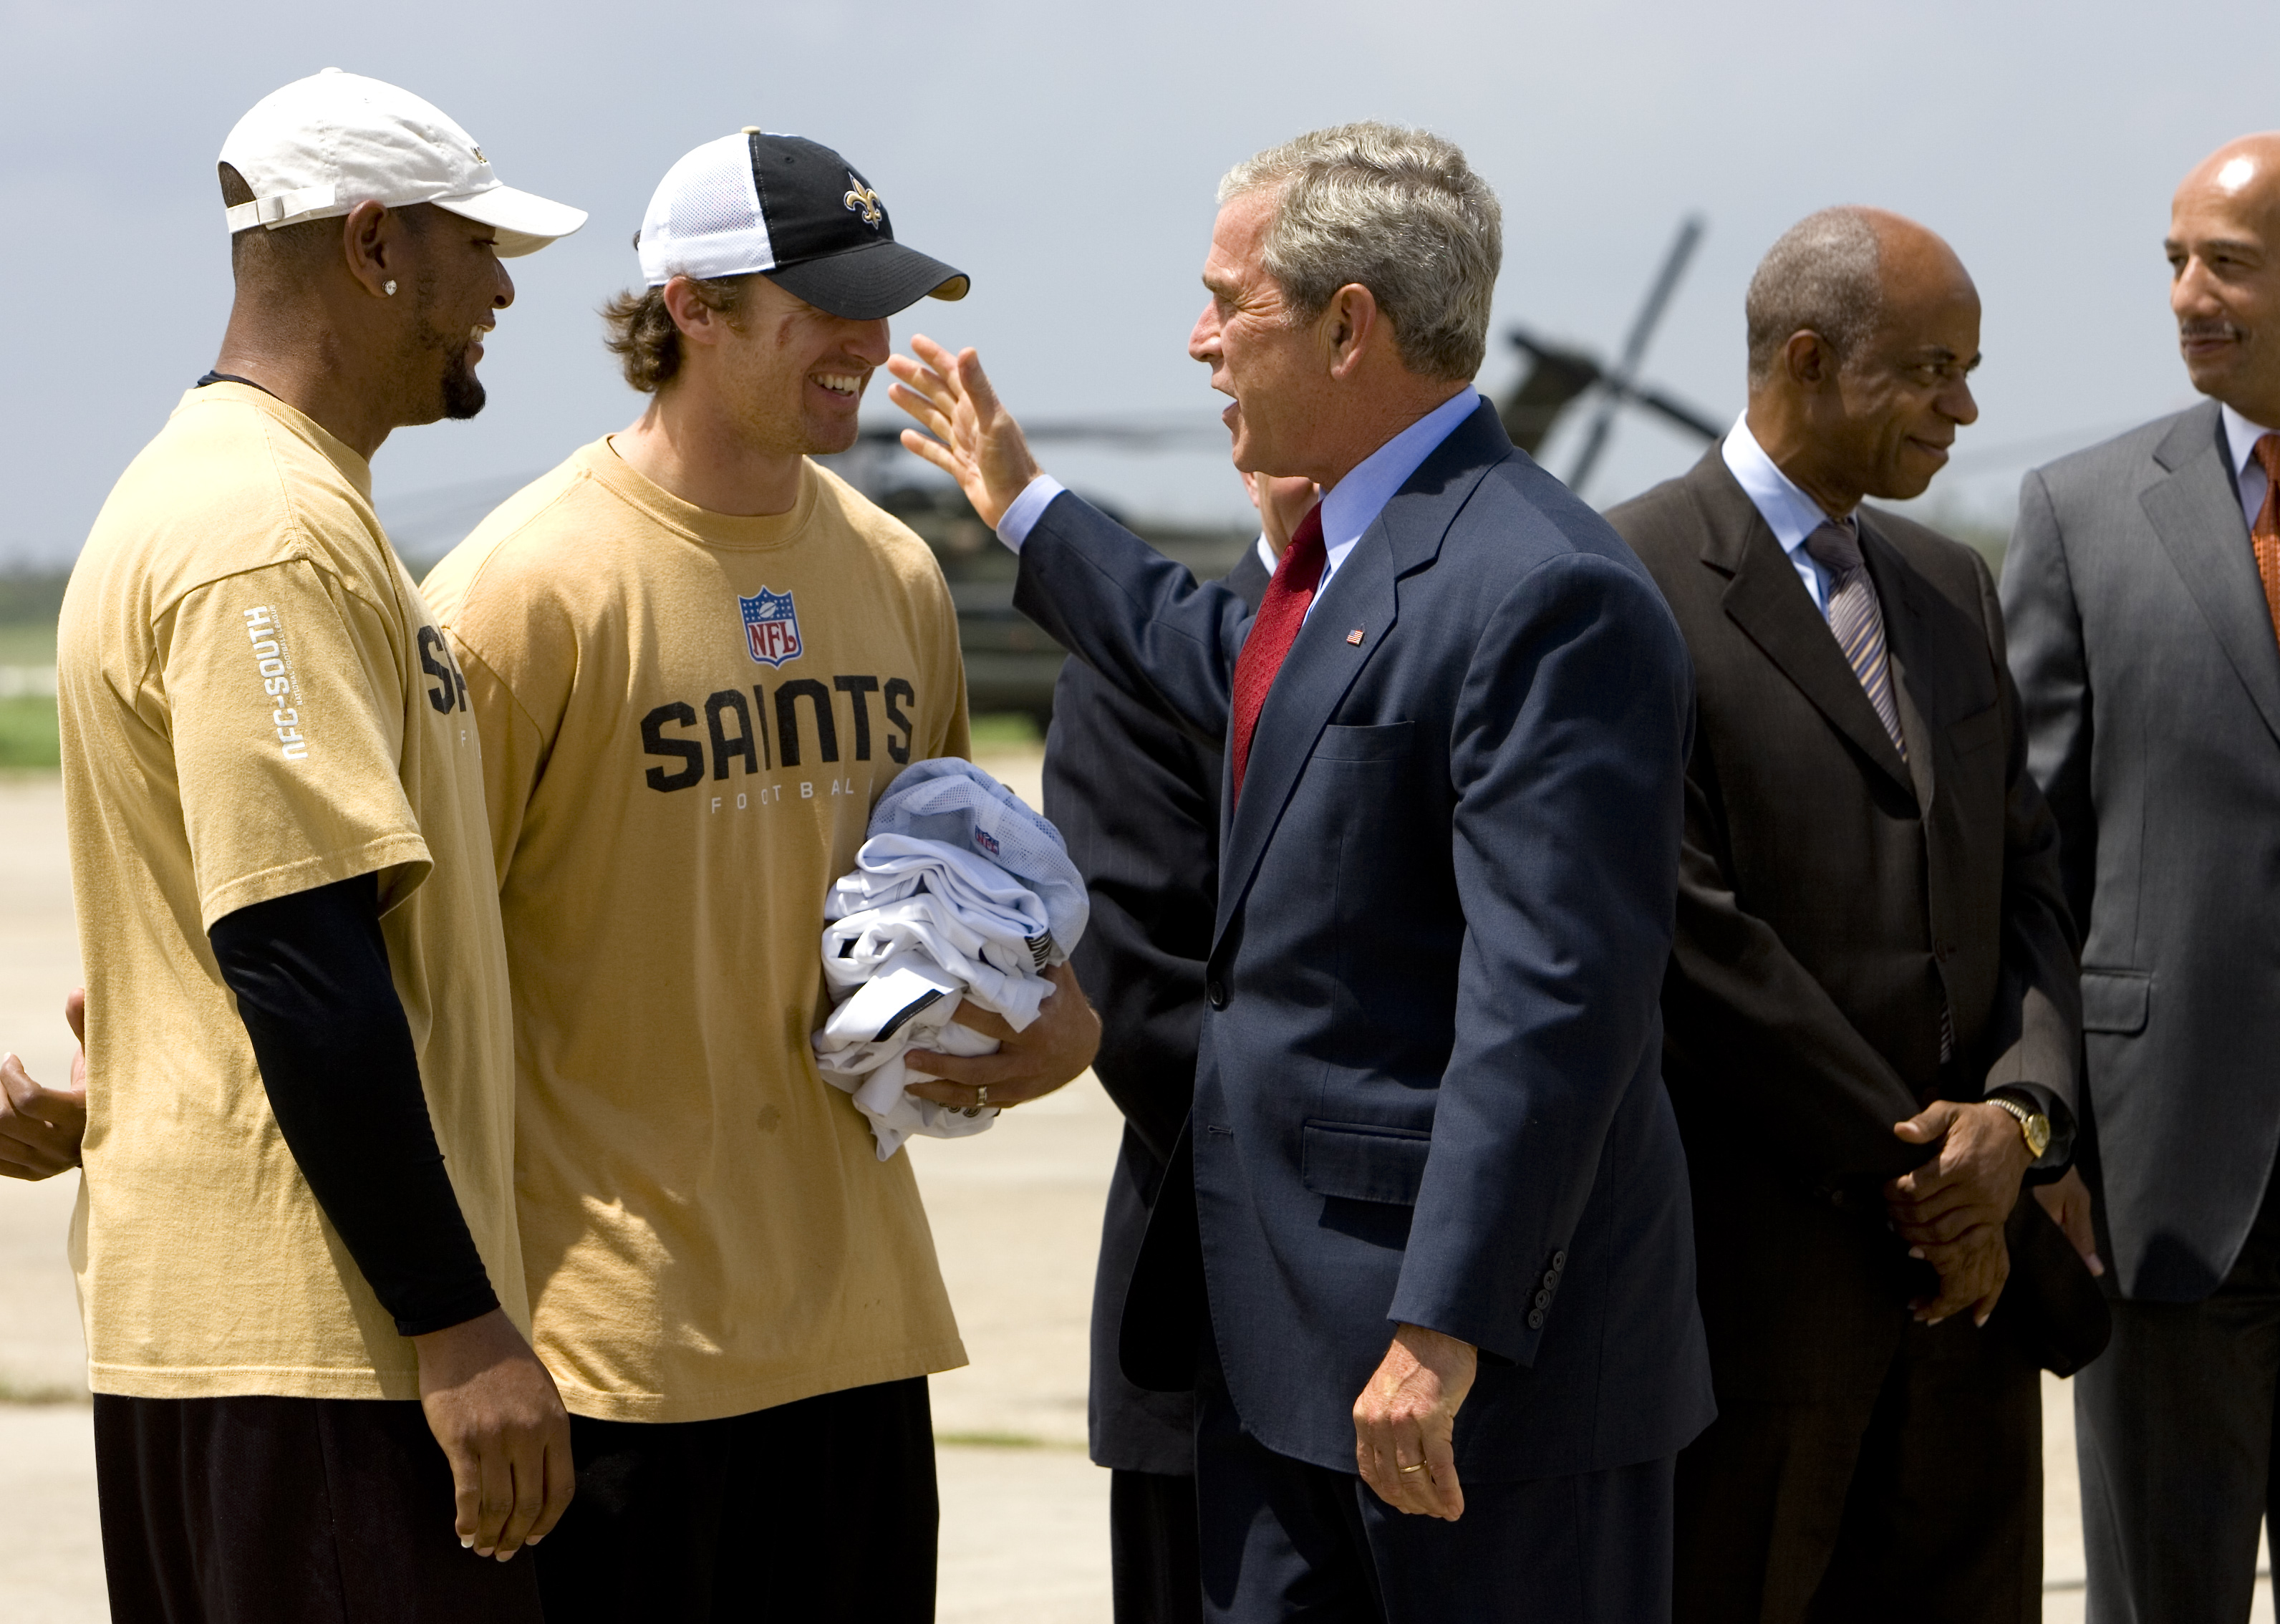 FILE - In this Aug. 8, 2008, file photo, President George W. Bush is met by Deuce McAllister, left, and Drew Brees of the New Orleans Saints football team as he arrives at Louis Armstrong New Orleans International Airport on the way to events marking the